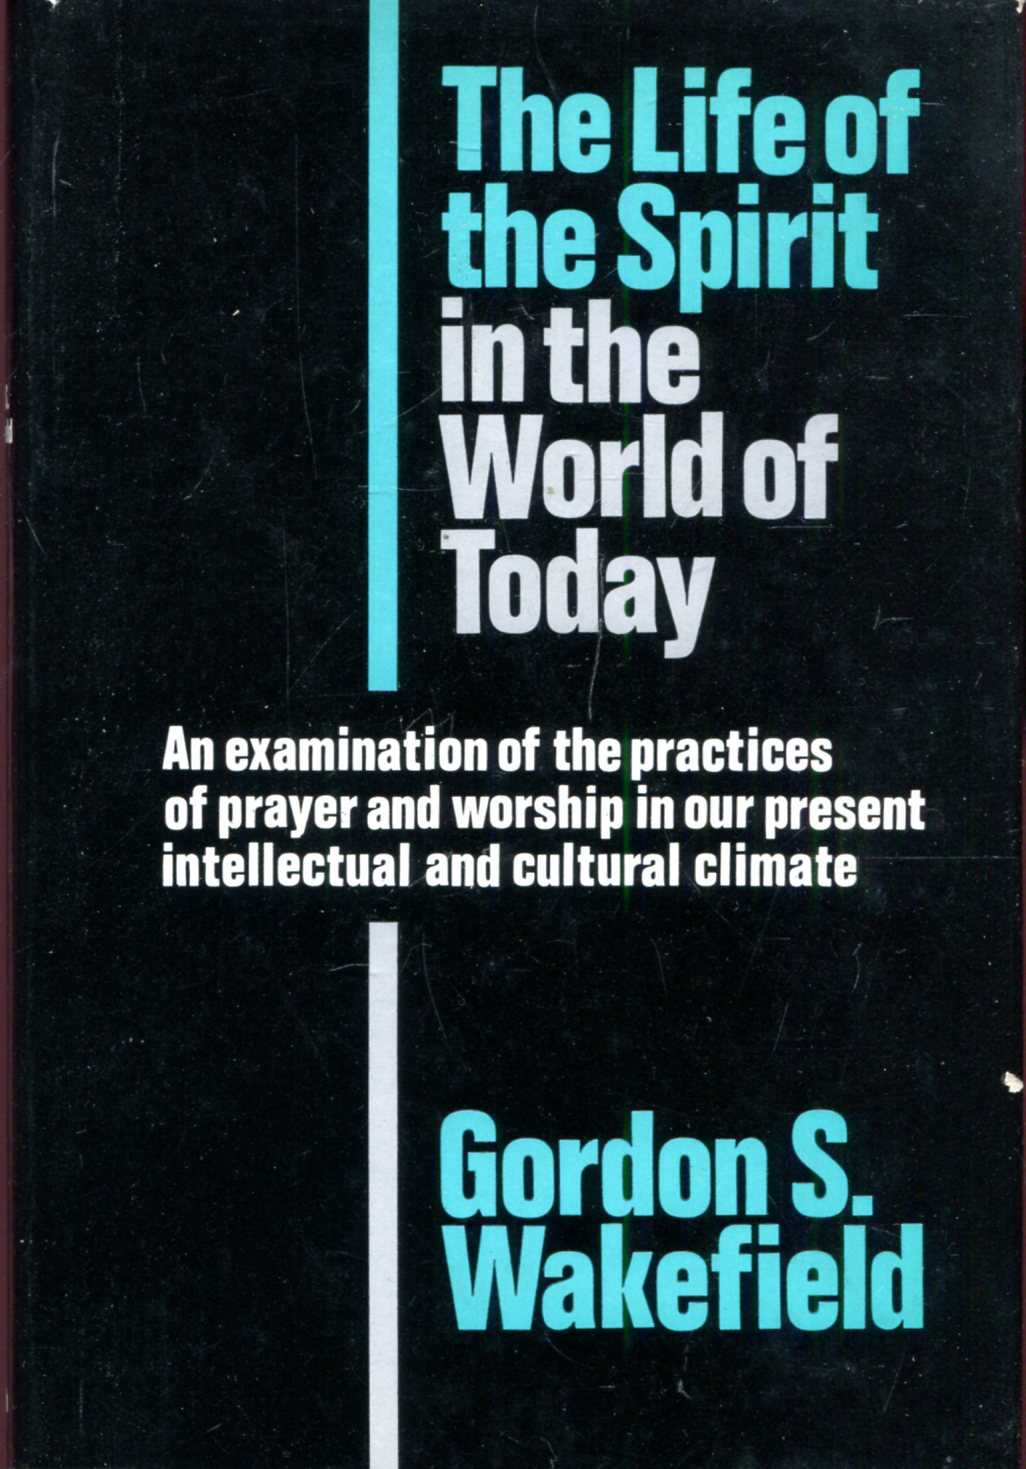 Image for The life of the spirit in the world of today, an examination of the practices of prayer and worship in our present intellectual and cultural climate